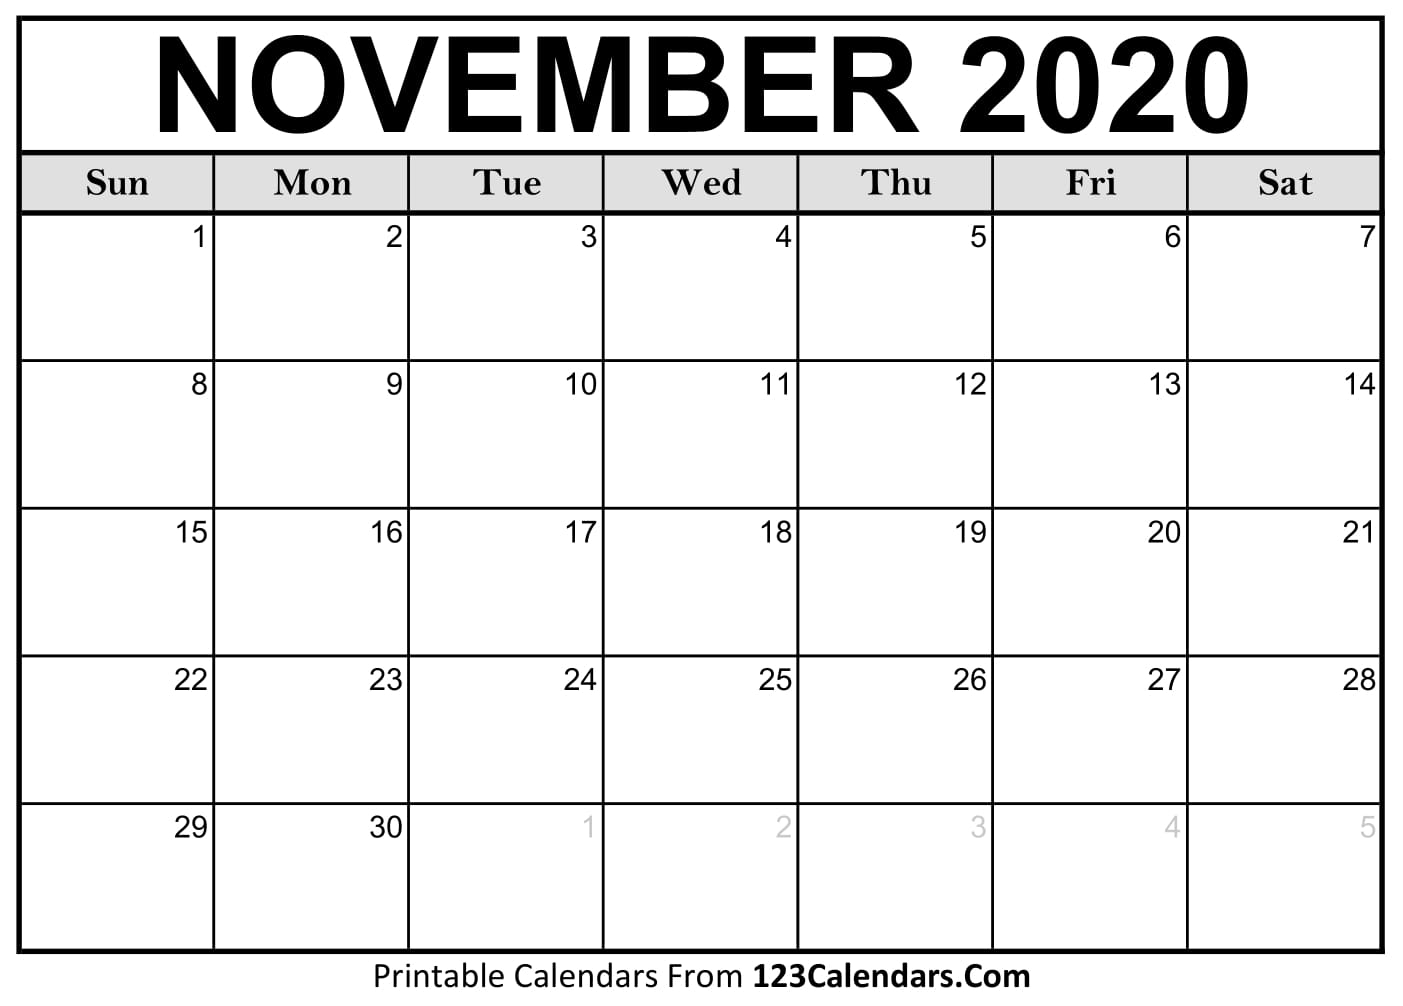 November 2020 Printable Calendar | 123Calendars with January 2020 Calendar 123Calendars